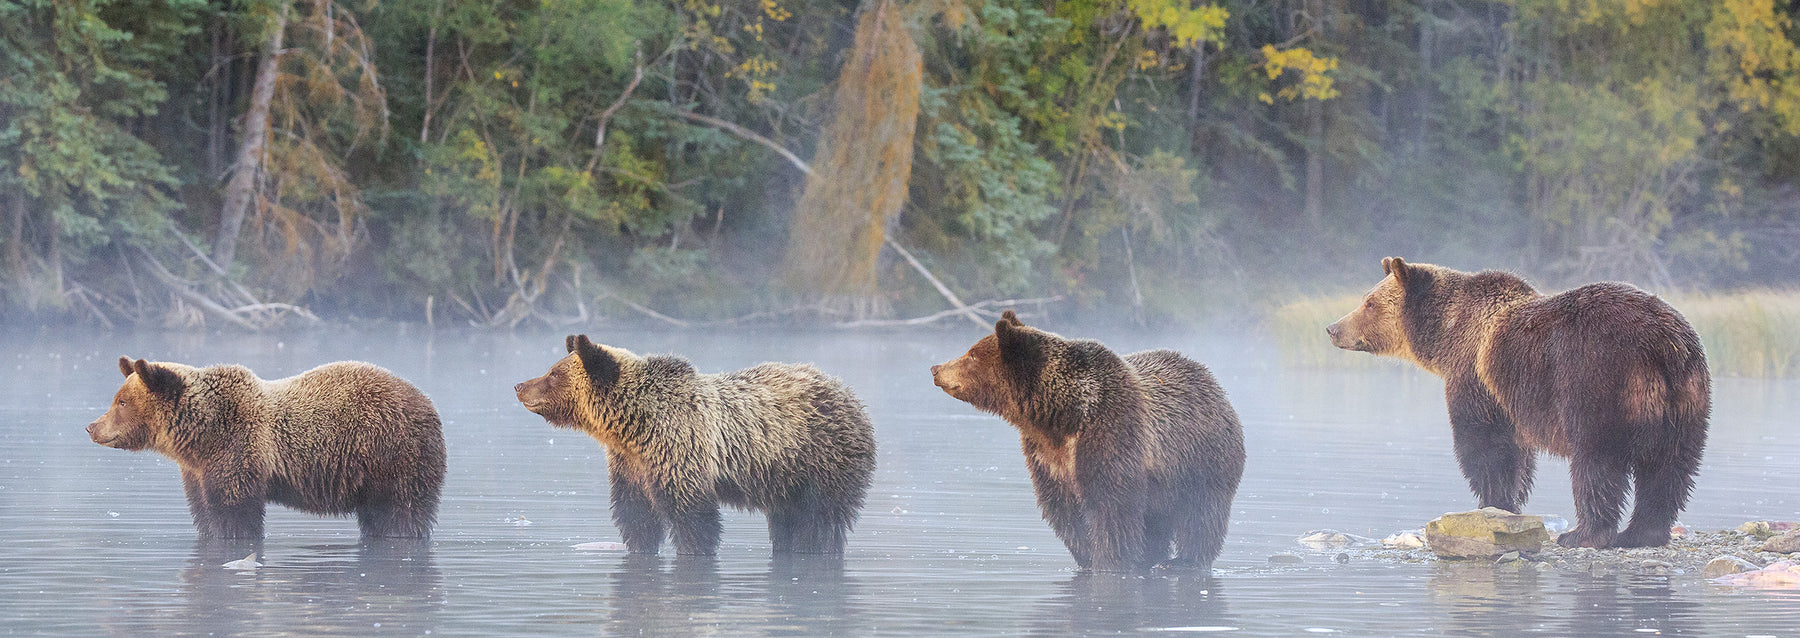 Grizzly bear photography - British Columbia